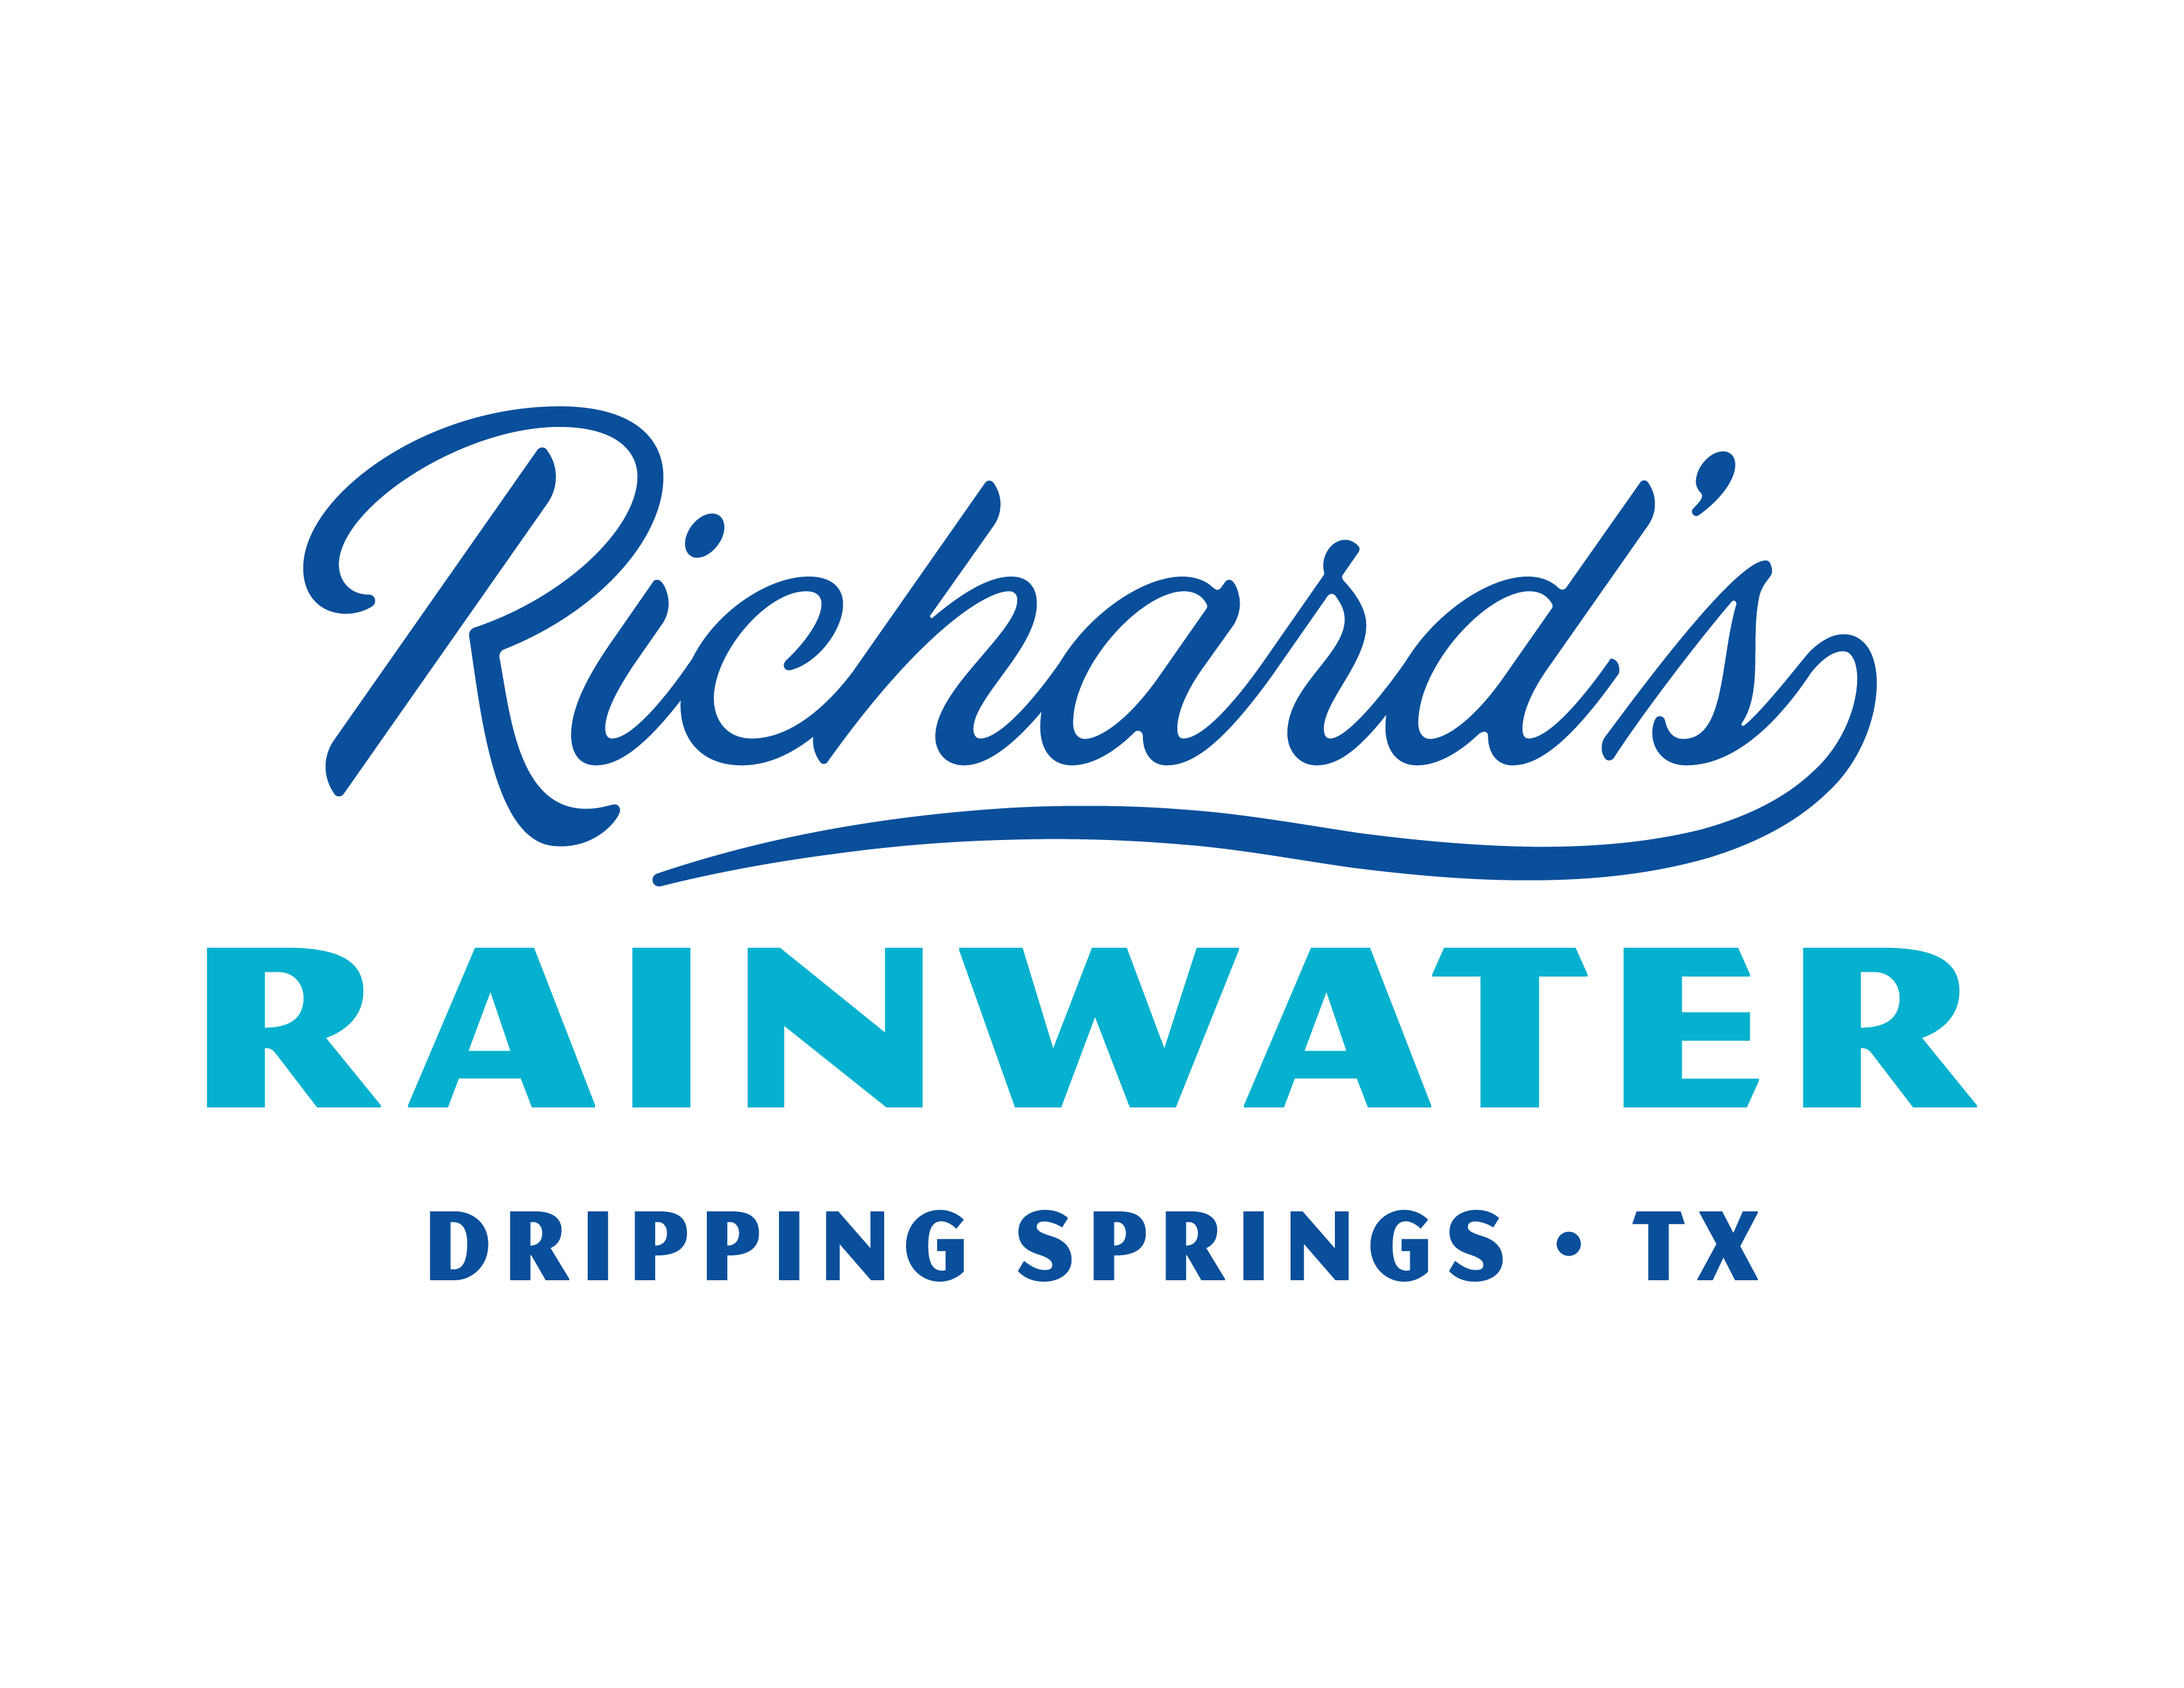 //www.texasstatesociety.org/wp-content/uploads/2019/02/richards-rainwater.png